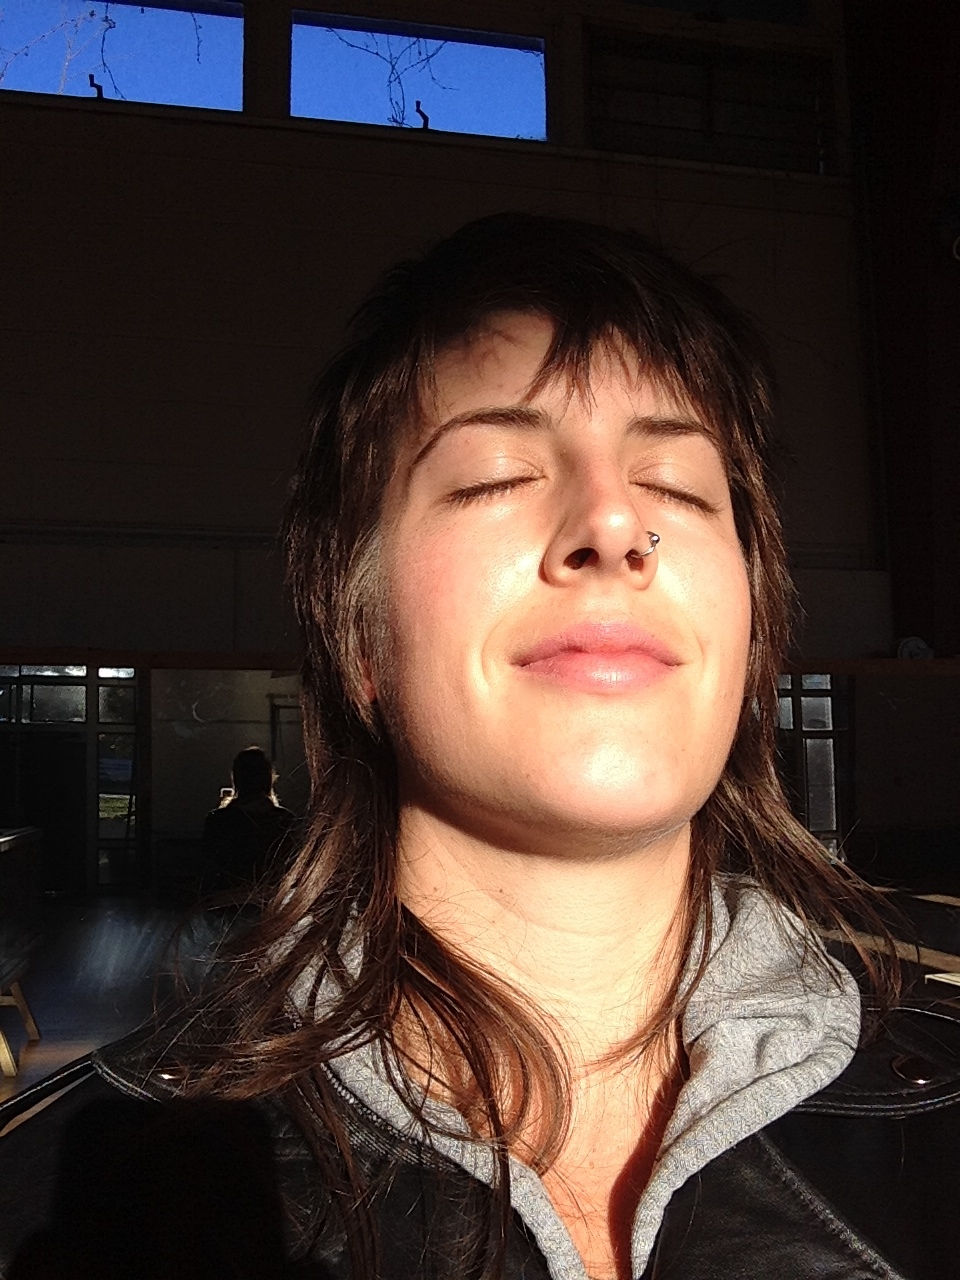 The morning sun in the gym at Keep Colony is as comforting to me as the embrace of friend or lover